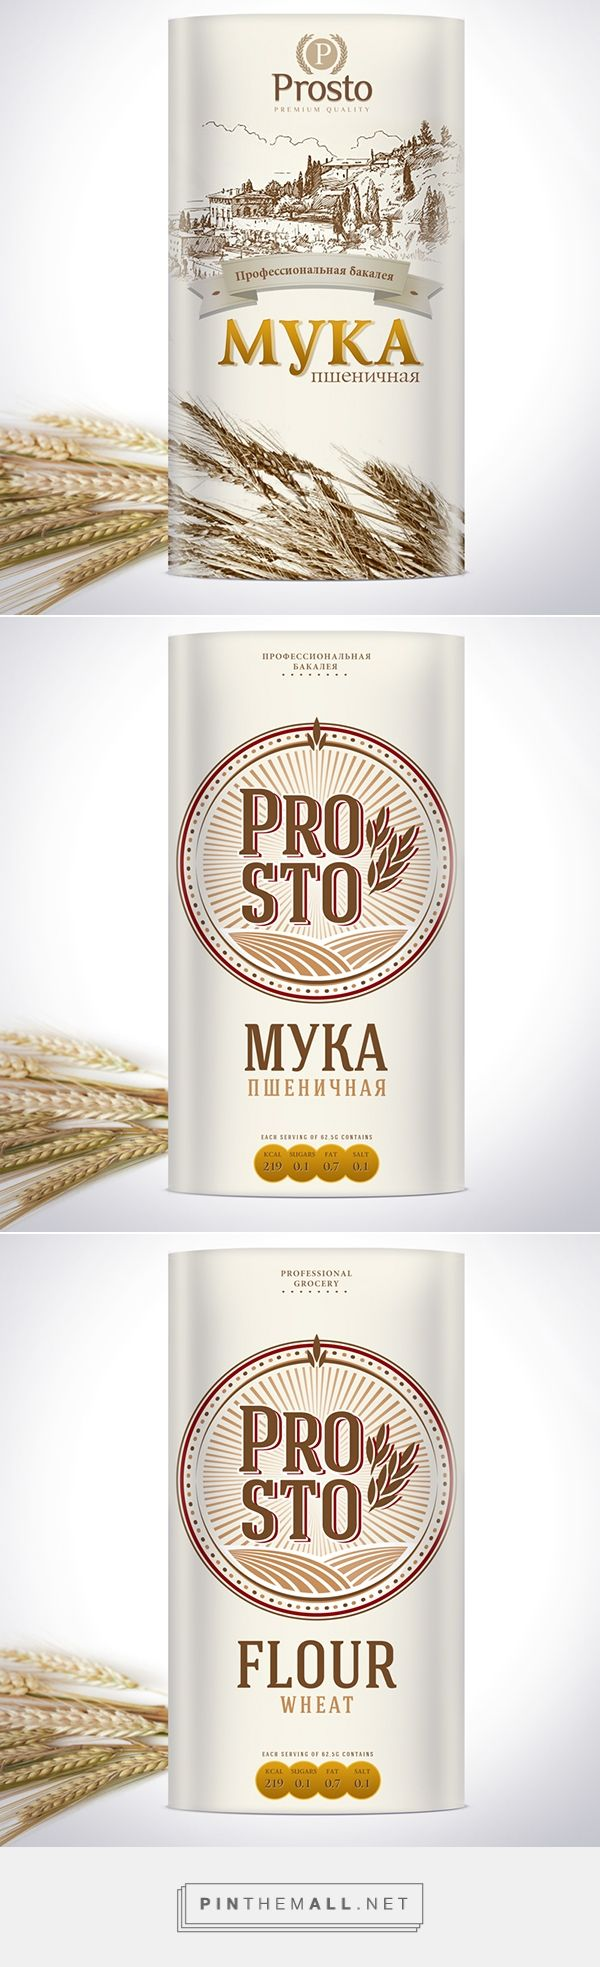 Prosto Flour on Behance by Different Studio, Kiev, Ukraine curated by Packaging Diva PD. This is flour for professionals.